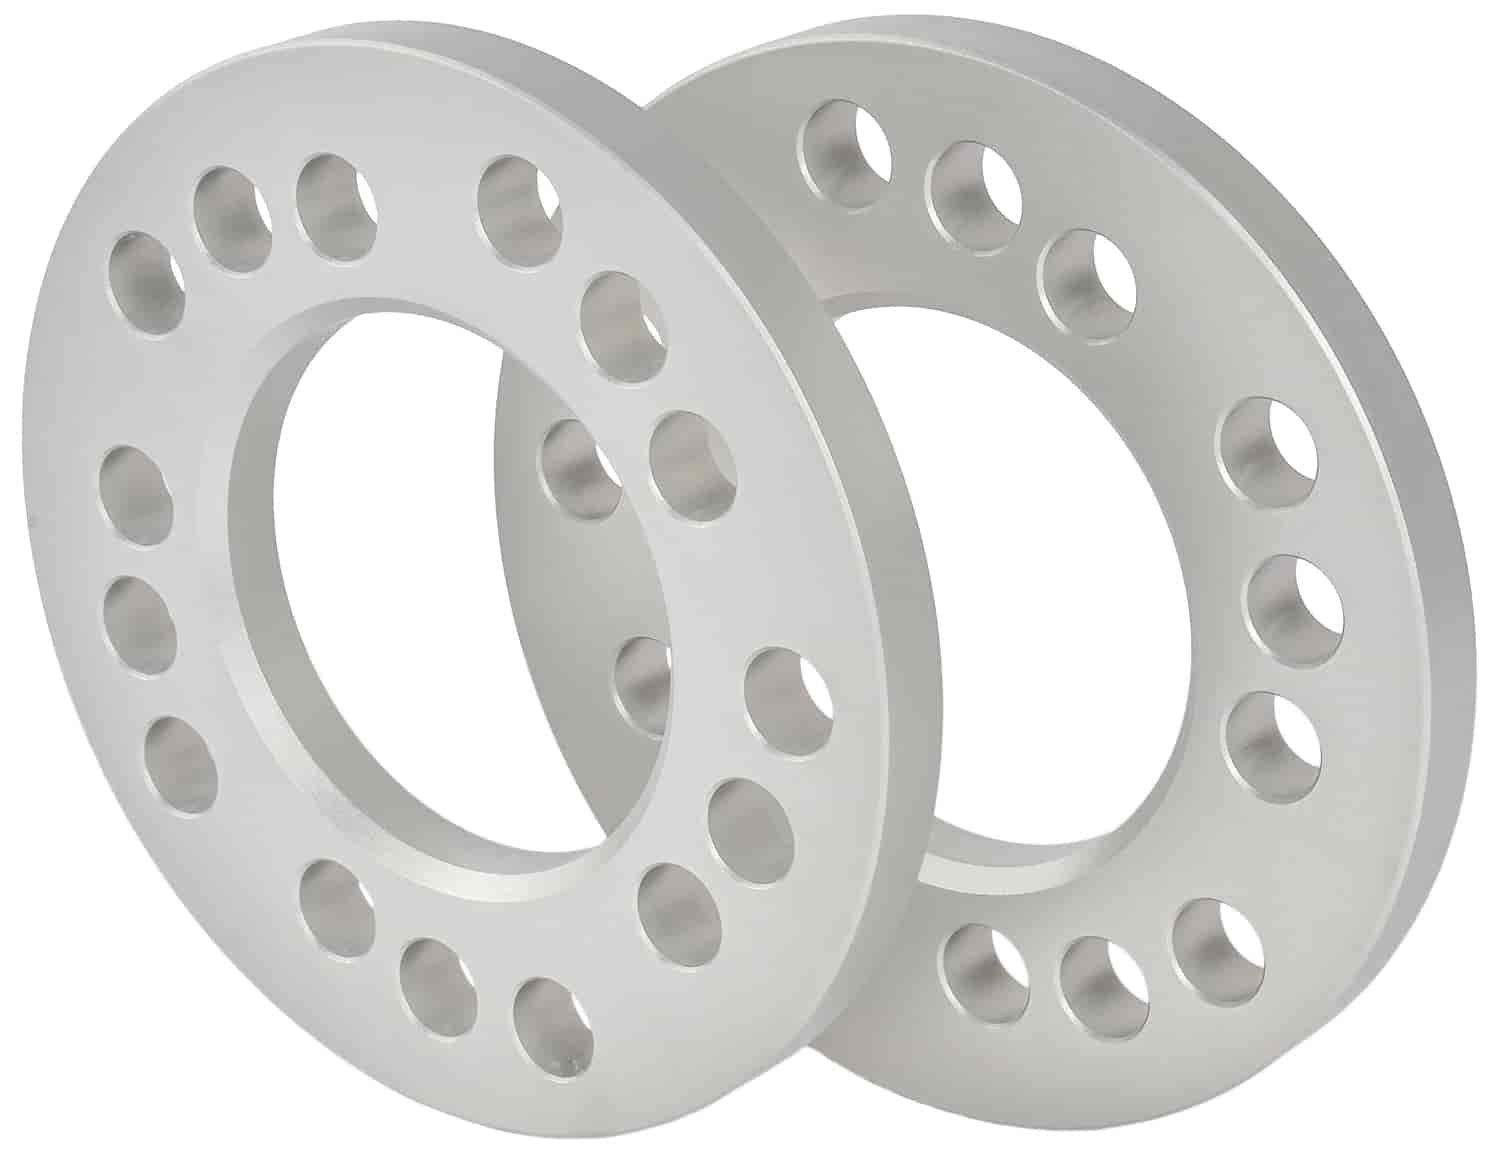 JEGS Performance Products 65052 - JEGS 5-Lug Billet Wheel Spacers